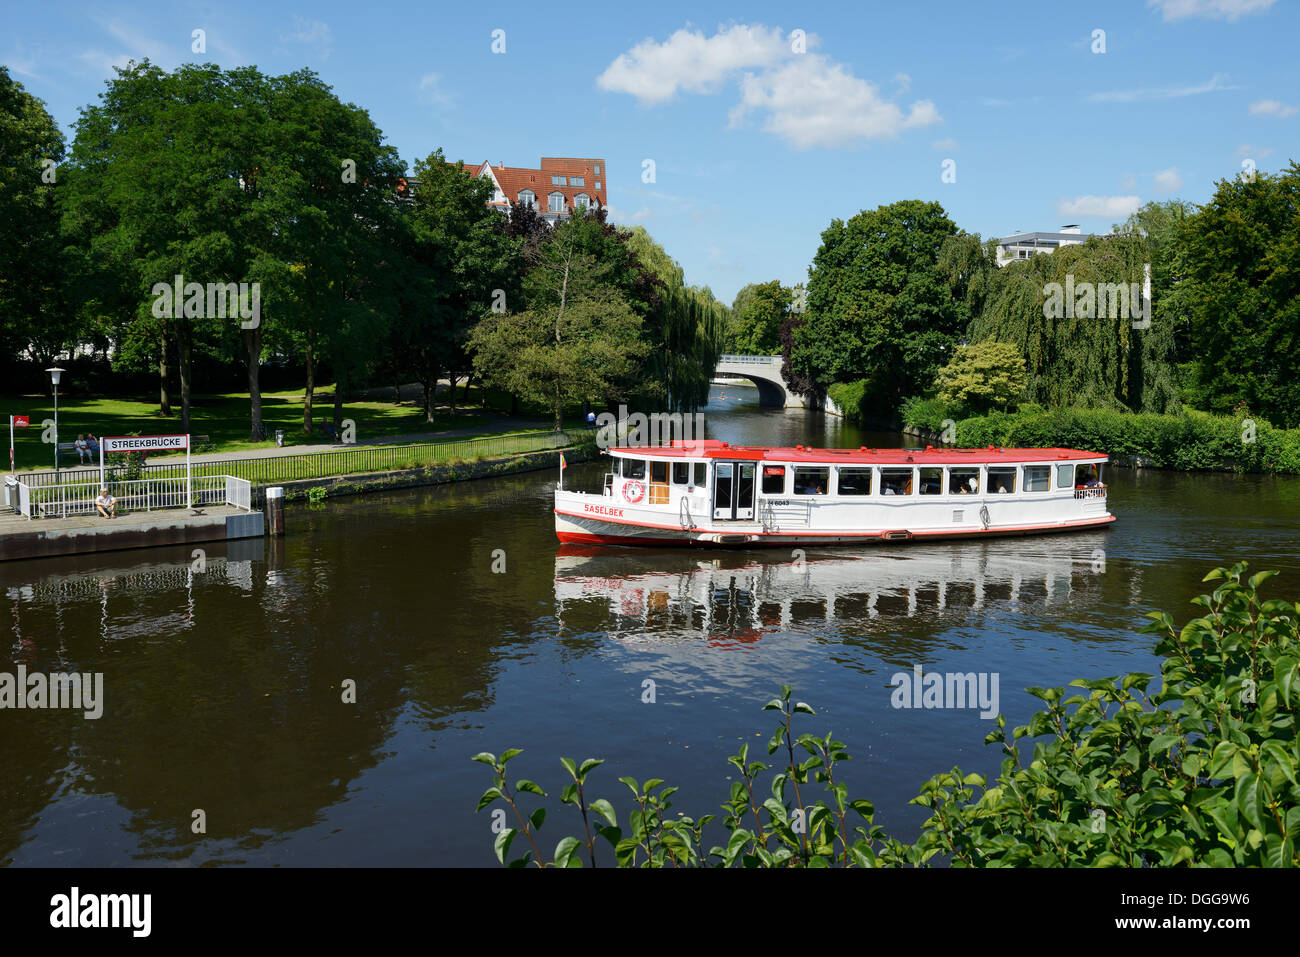 Steamer on the course of the Alster river at the towpath, pier, Streekbruecke bridge, Hamburg, Hamburg, Germany - Stock Image